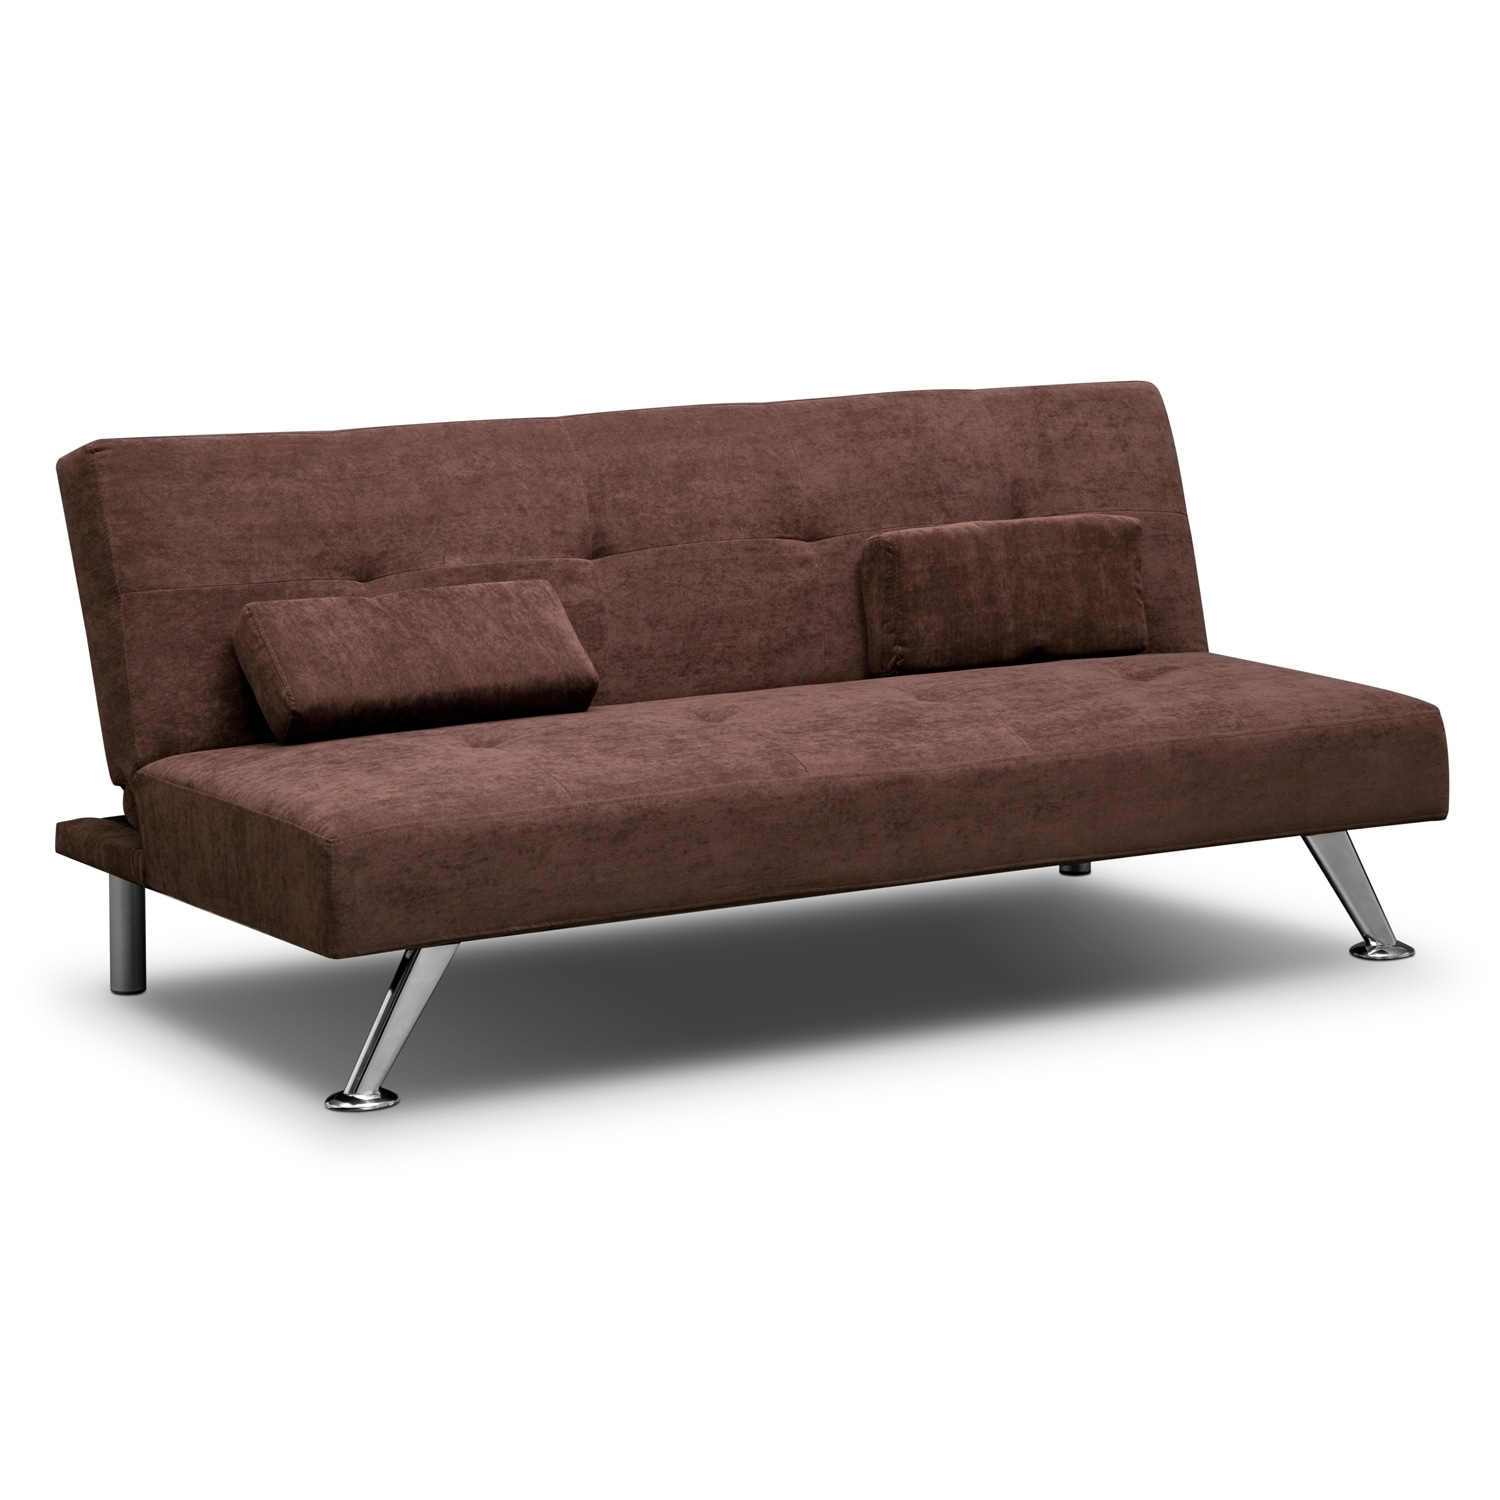 Value City Furniture Futons 28 Images Andrea Upholstery Futon Sofa Bed With Storage Value